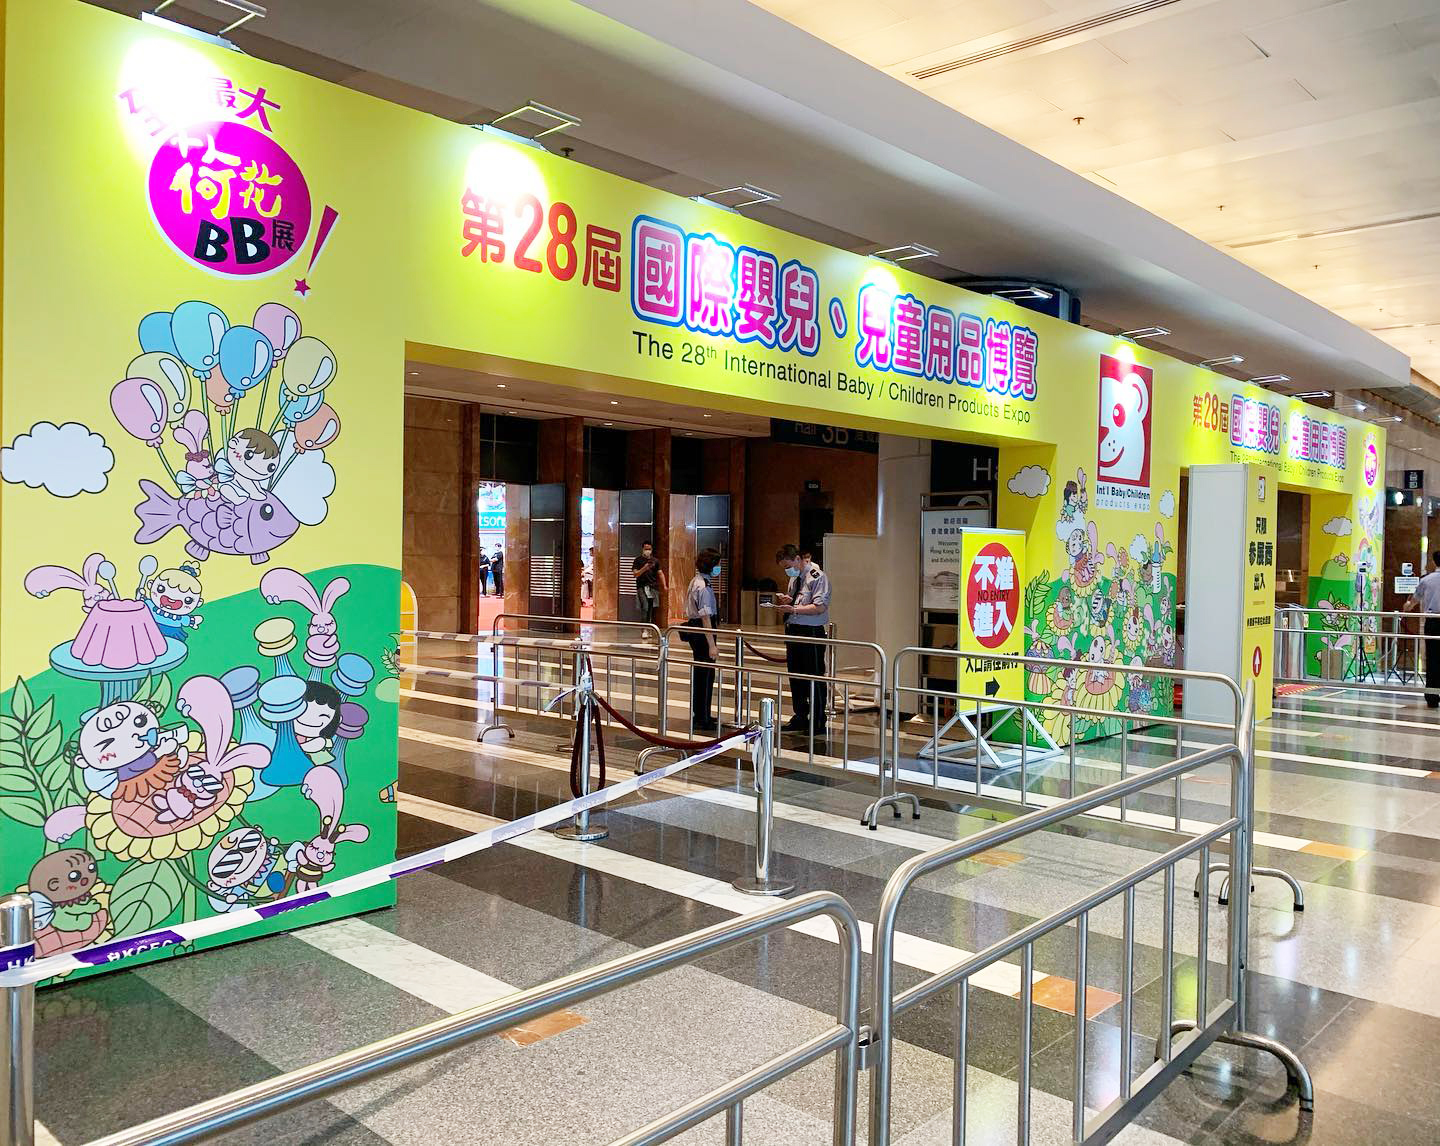 The 28th International Baby/ Children Products Expo